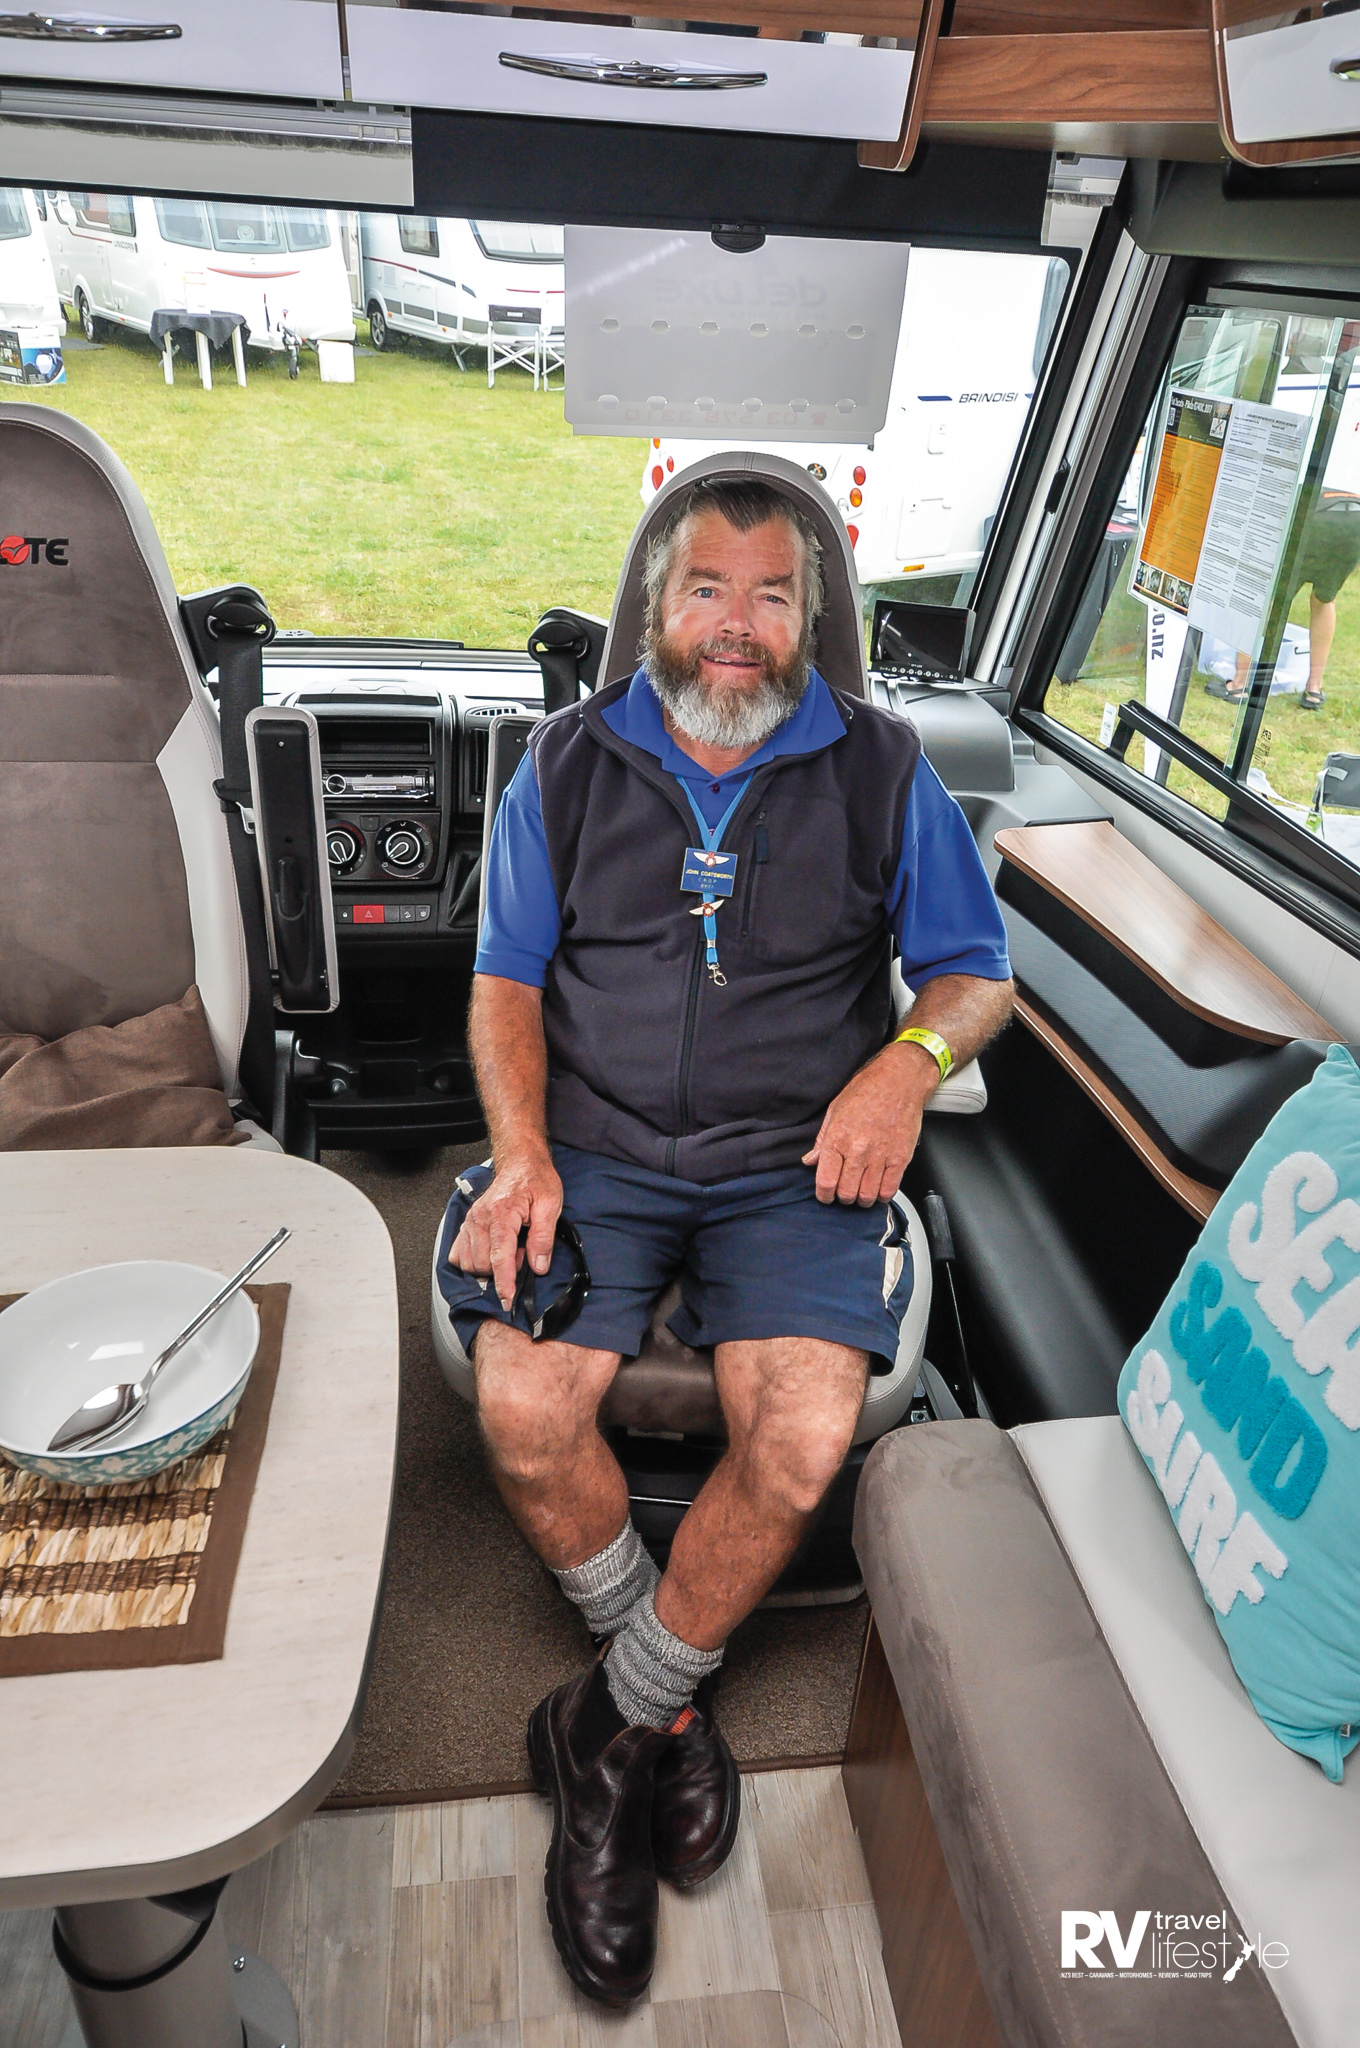 John Coatsworth (Helen's husband so a long time NZMCA member) thinks this Captain's chair is just right for him